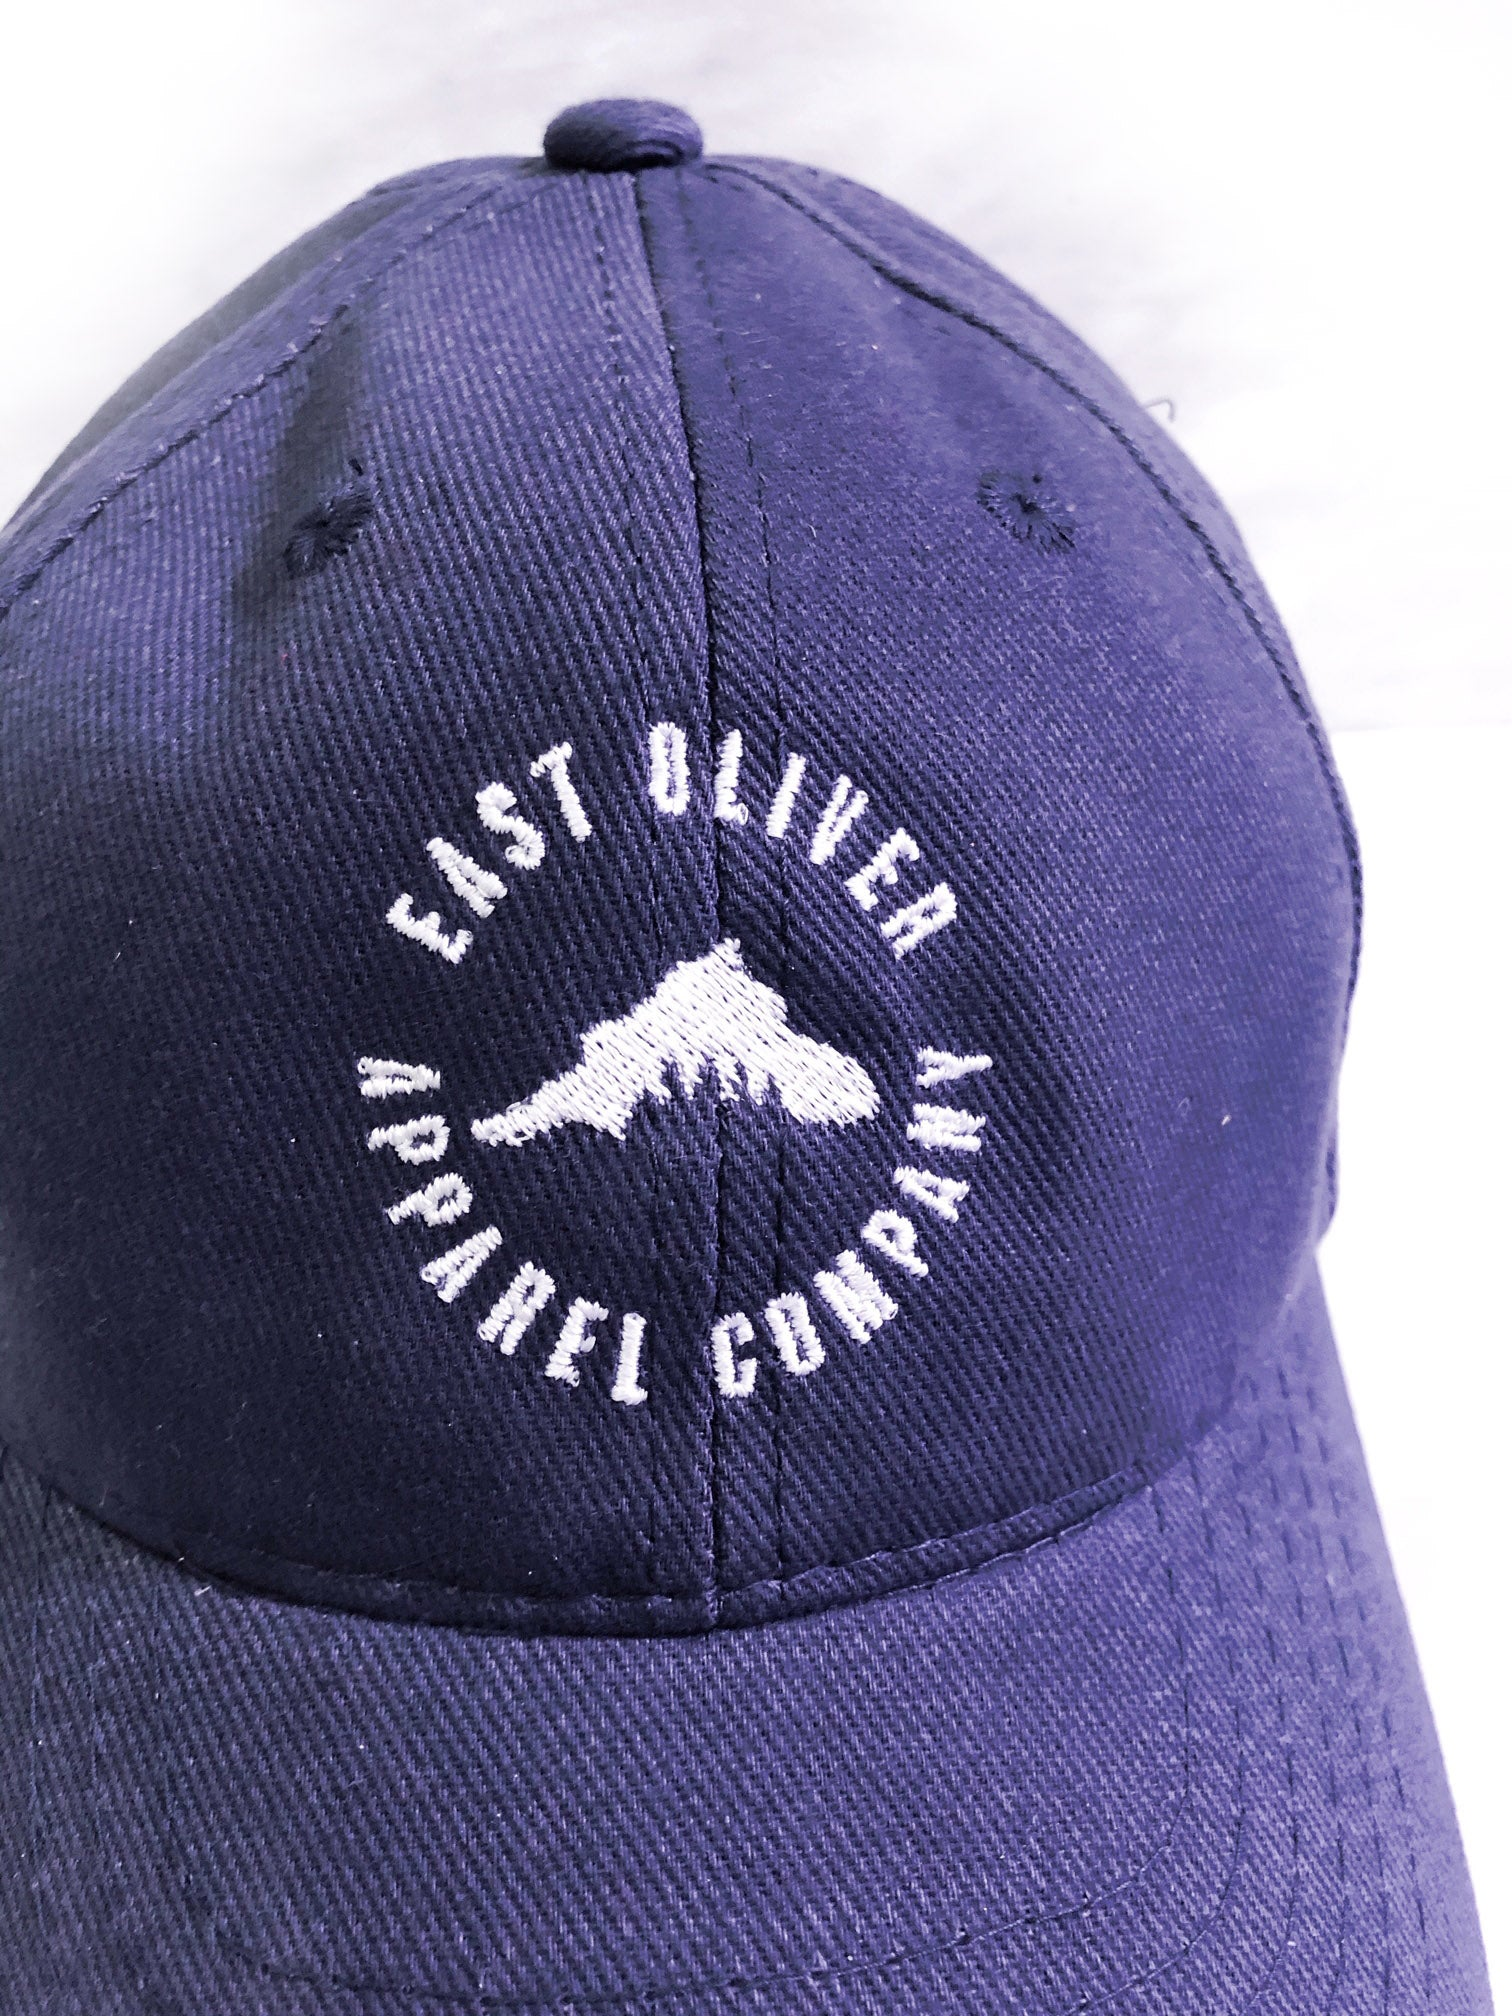 East Oliver Baseball Hat - East Oliver Apparel Co.